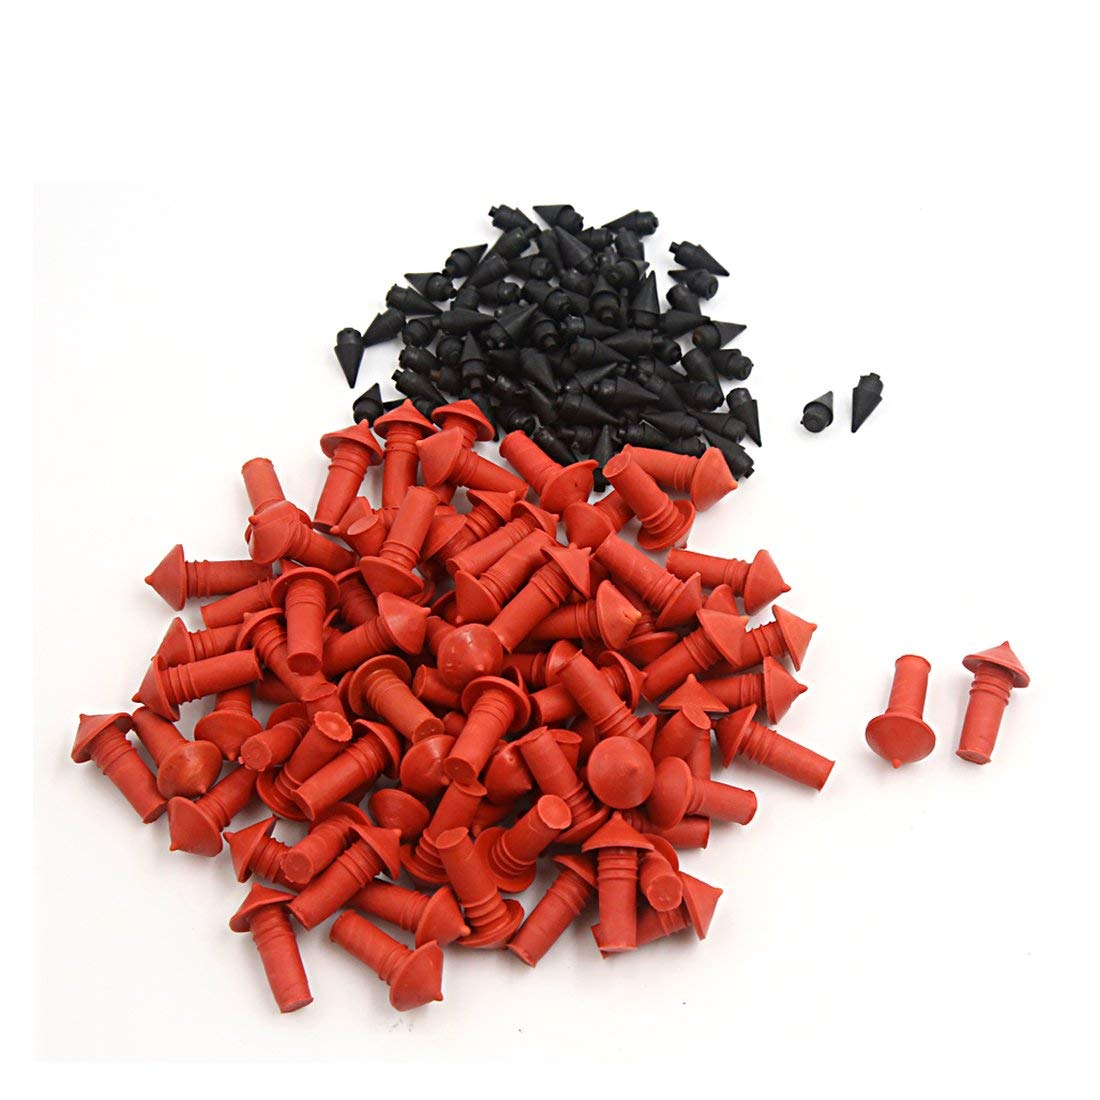 Uxcell  170Pcs Universal Mushroom Shaped Tire Repair Insert Plugs Red Black 7mm, 170 Pack